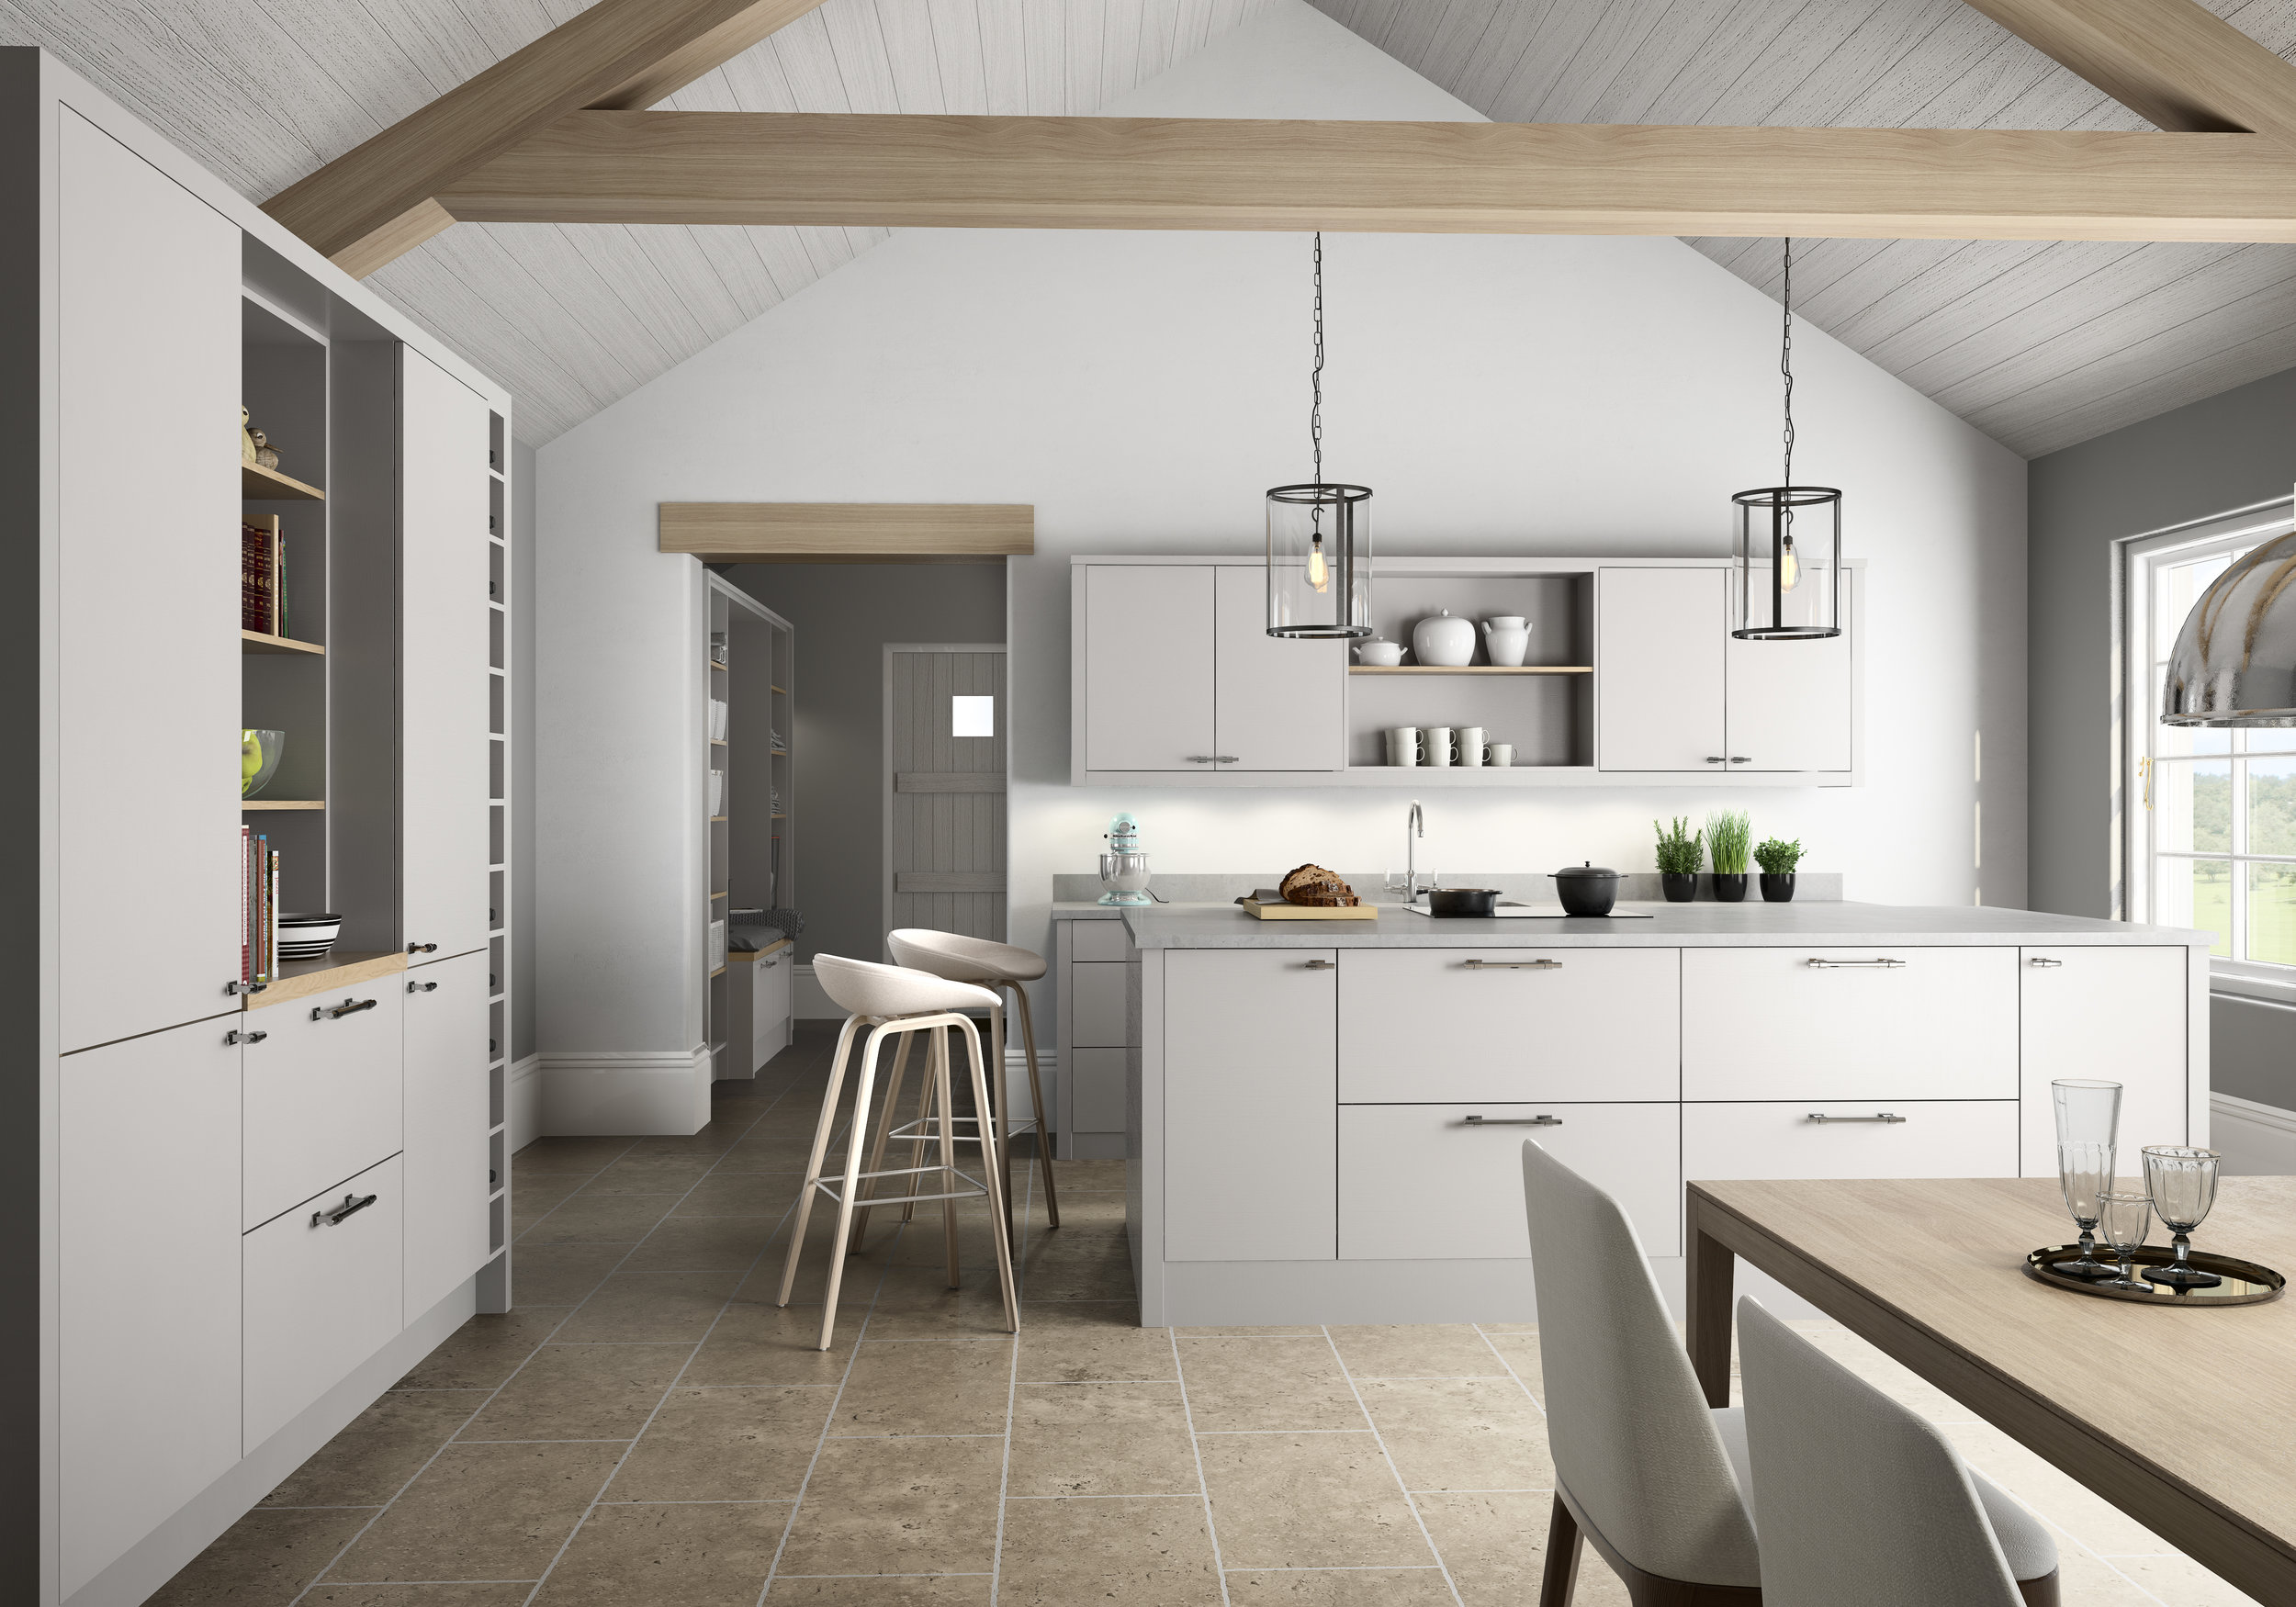 Salcombe Kitchen Daval 2.jpg